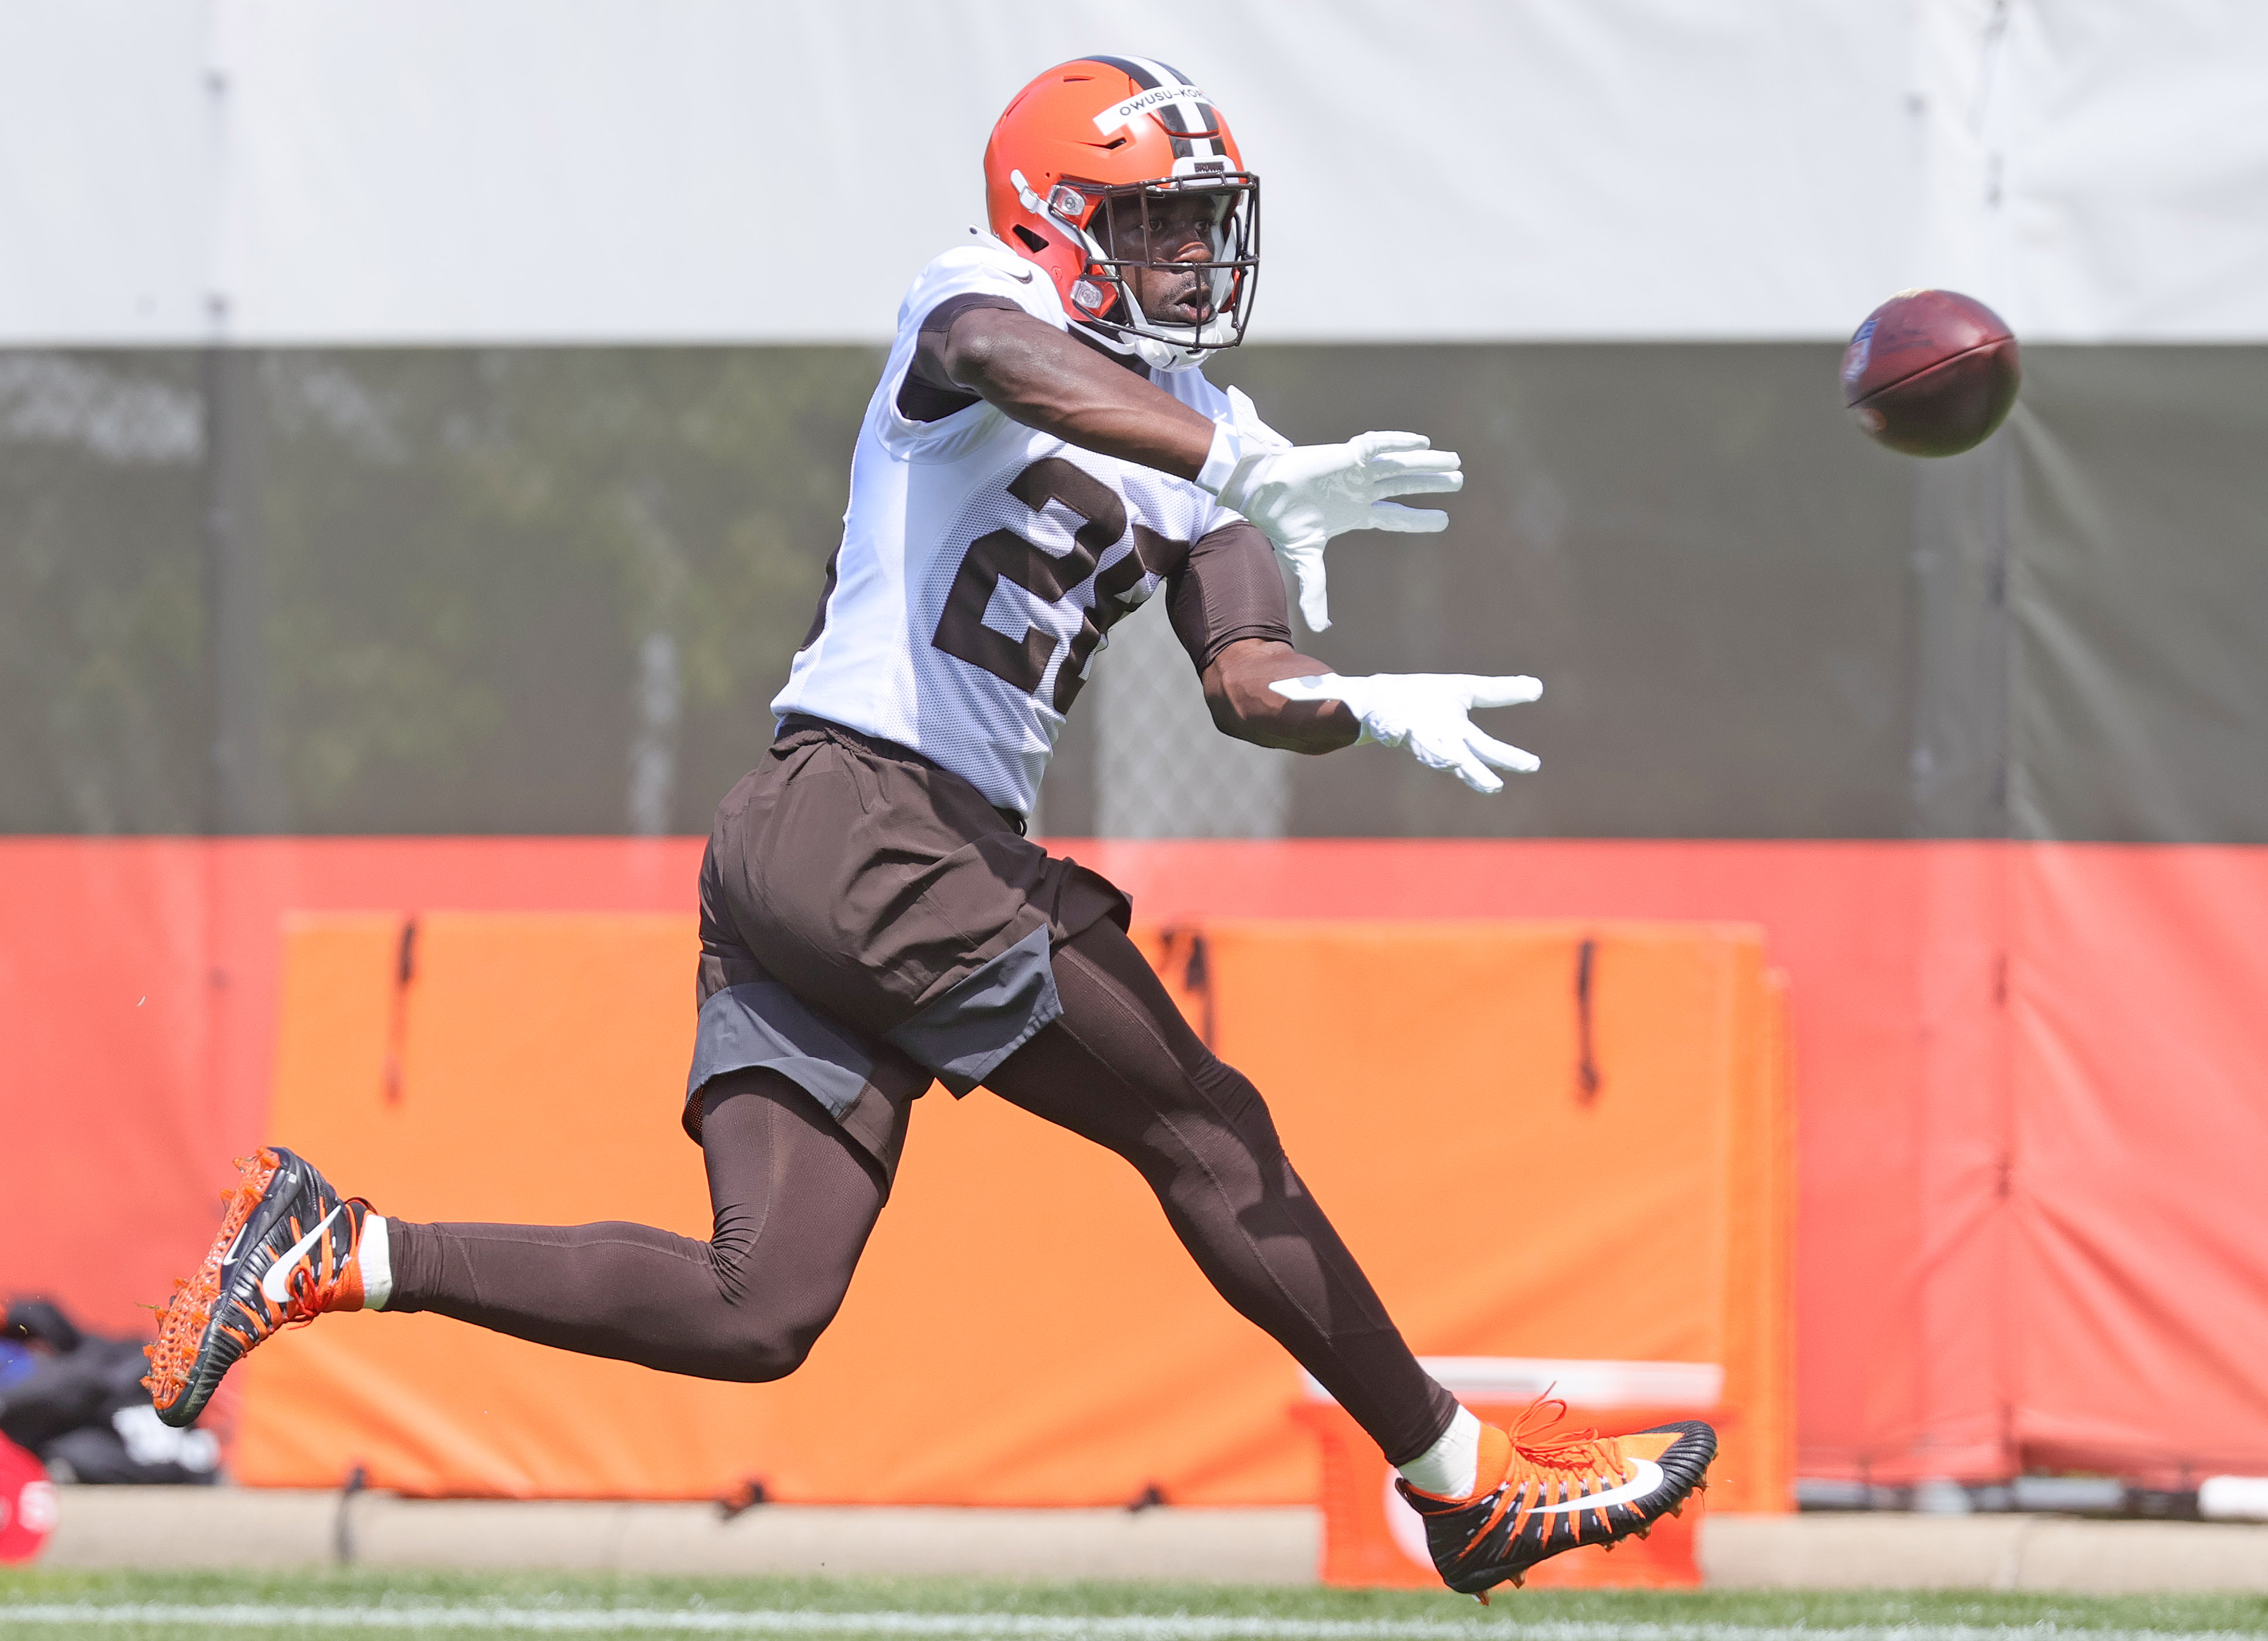 Browns sign 2nd-round LB Jeremiah Owusu-Koramoah to rookie contract worth  about $6.5 million - cleveland.com